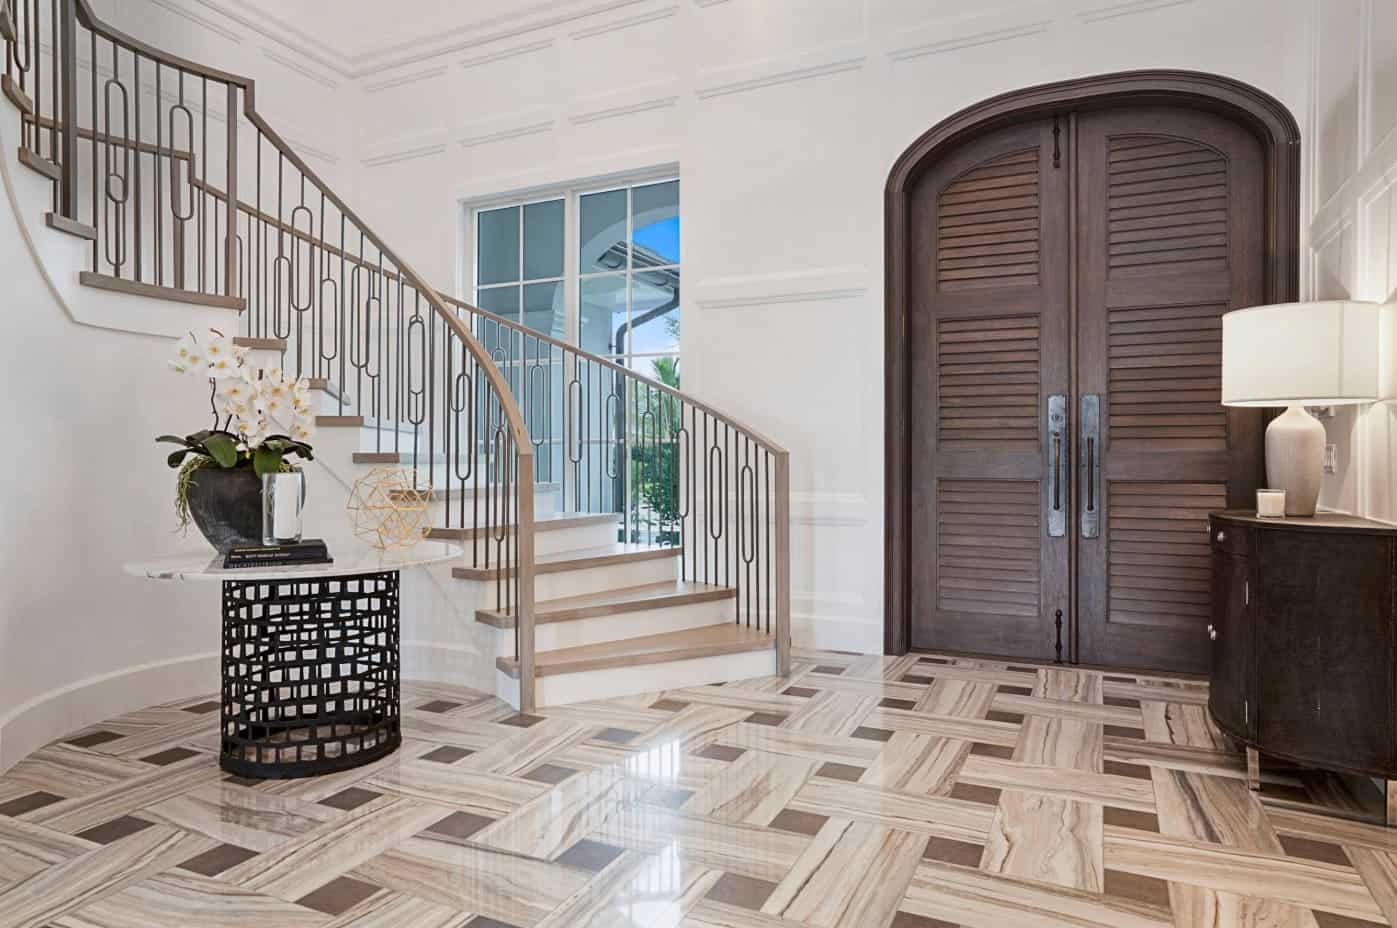 The brown patterned marble flooring of this Transitional-style foyer is perfectly matched with the wooden main doors as well as the drawers on the side bearing a table lamp across from the light brown and white staircase with simple wrought iron railings.